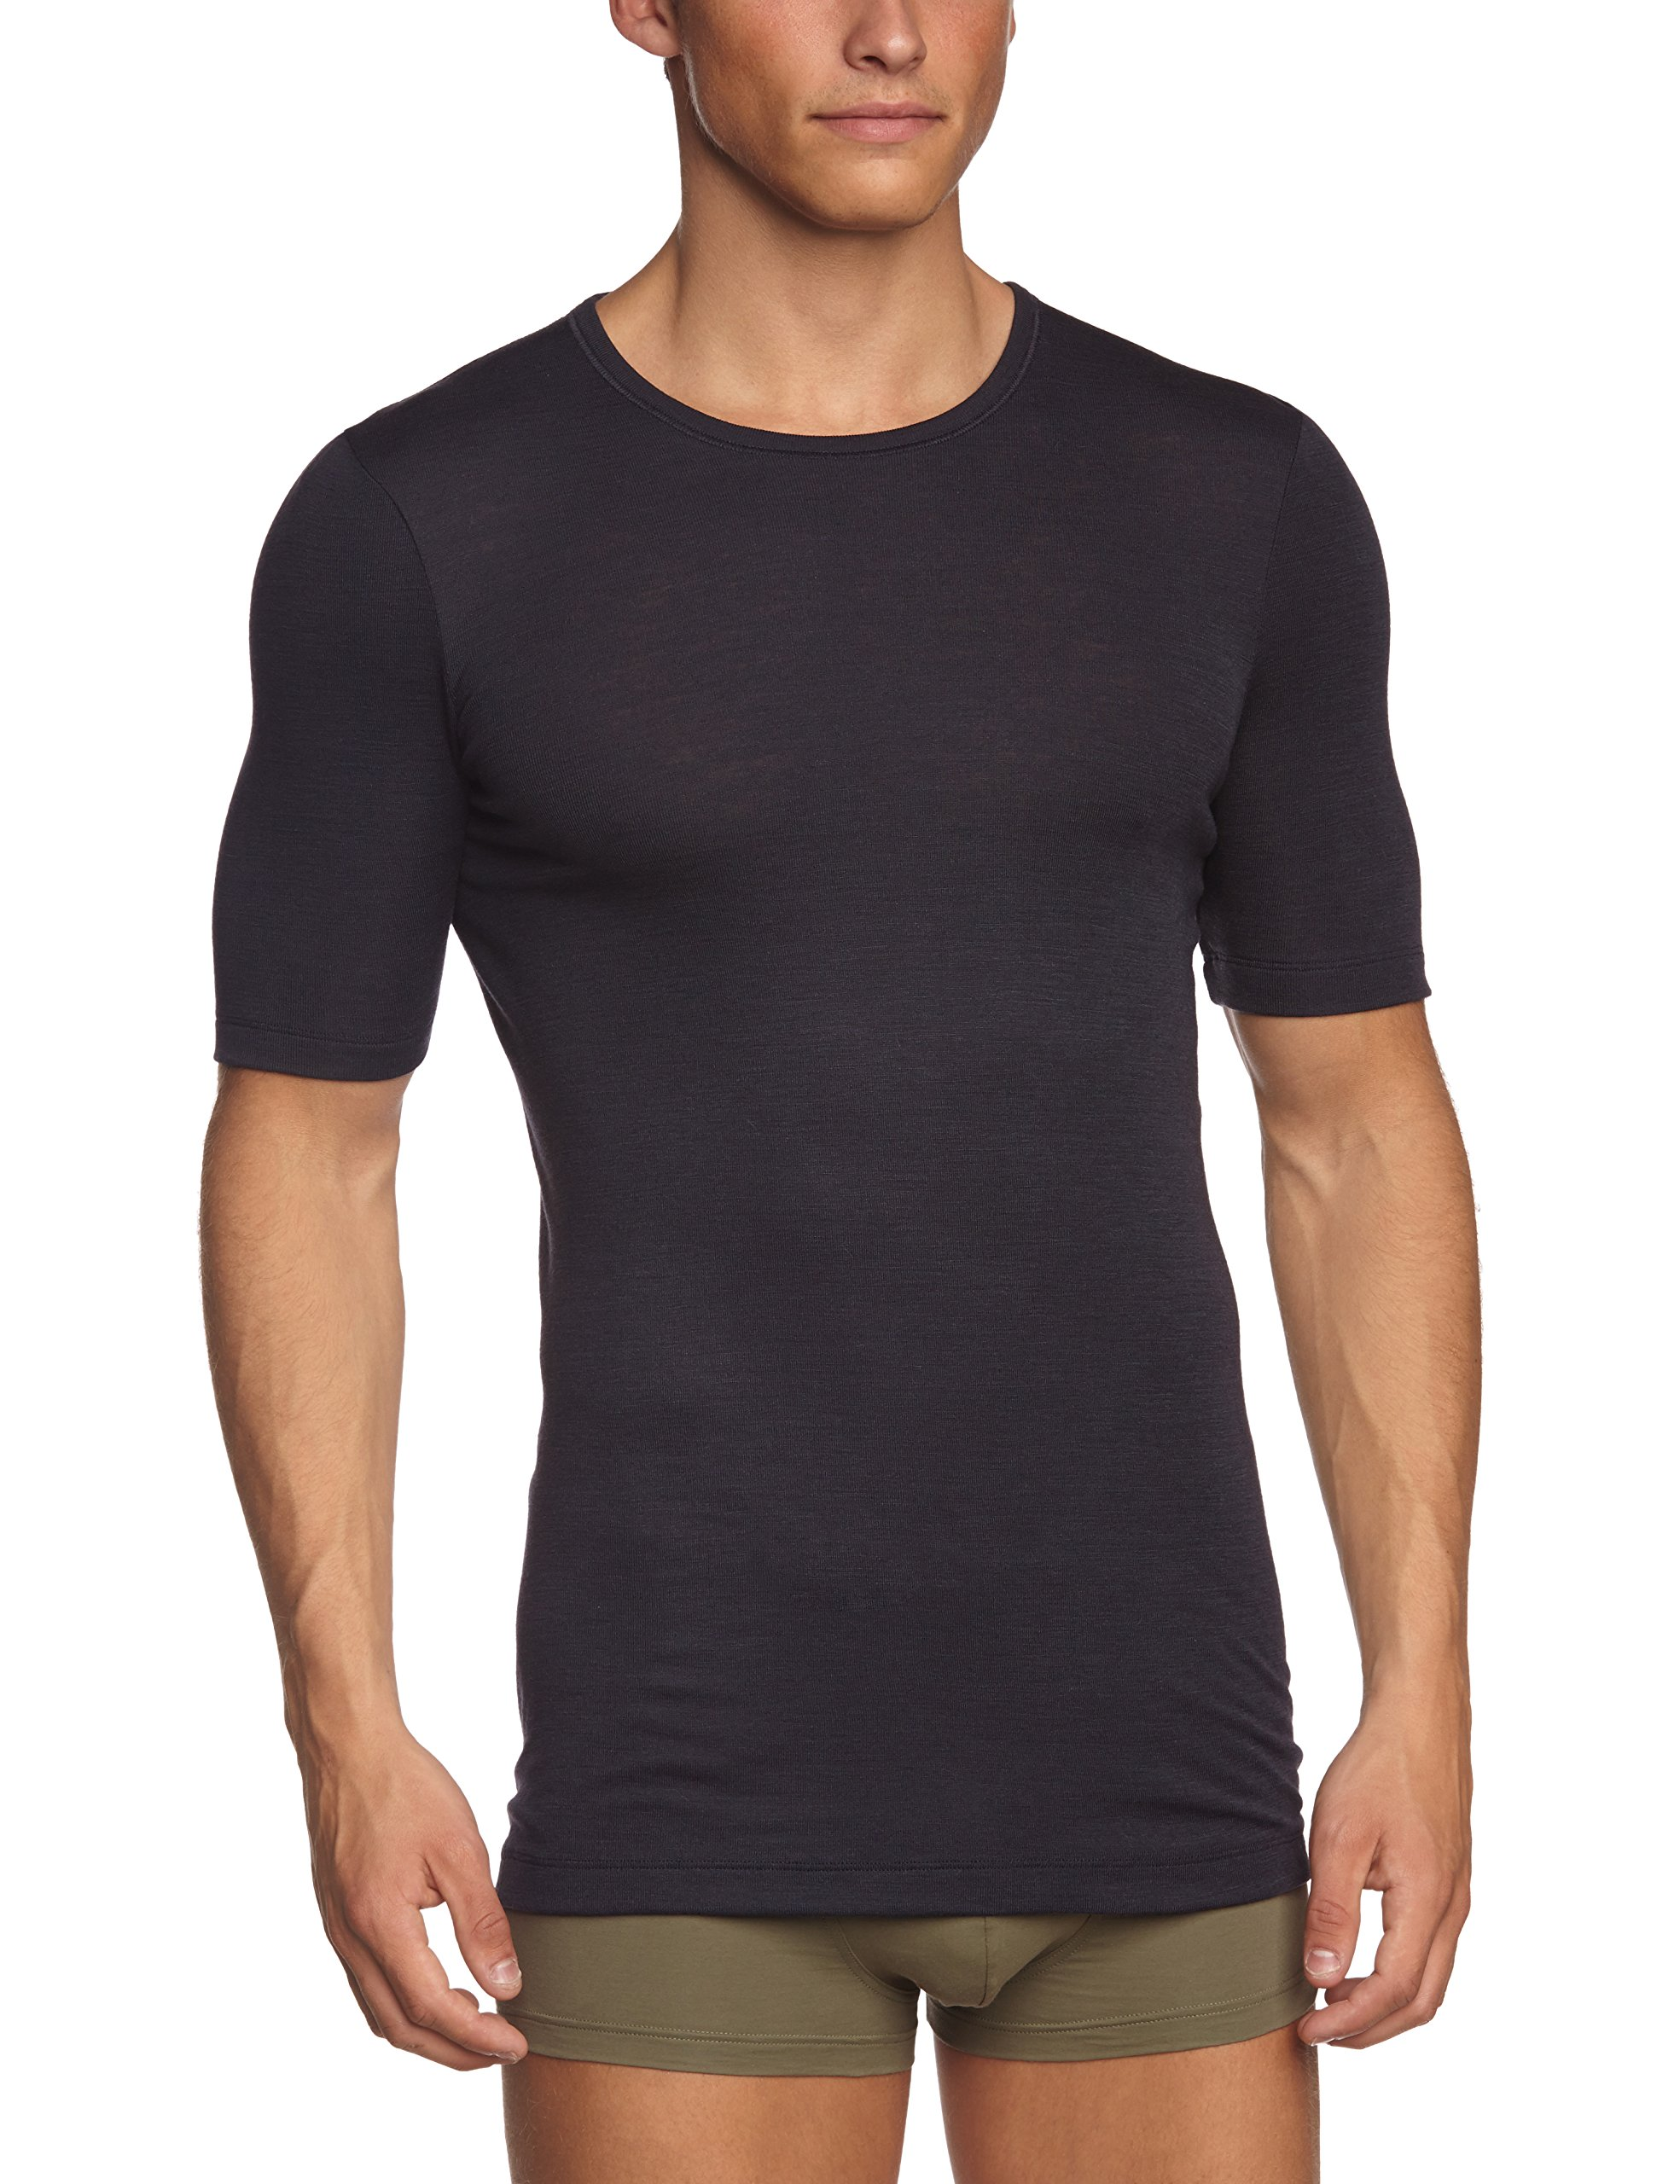 Homme Gris V22 Maillot Hanro3401 Corps Taille De L nwvmN80O